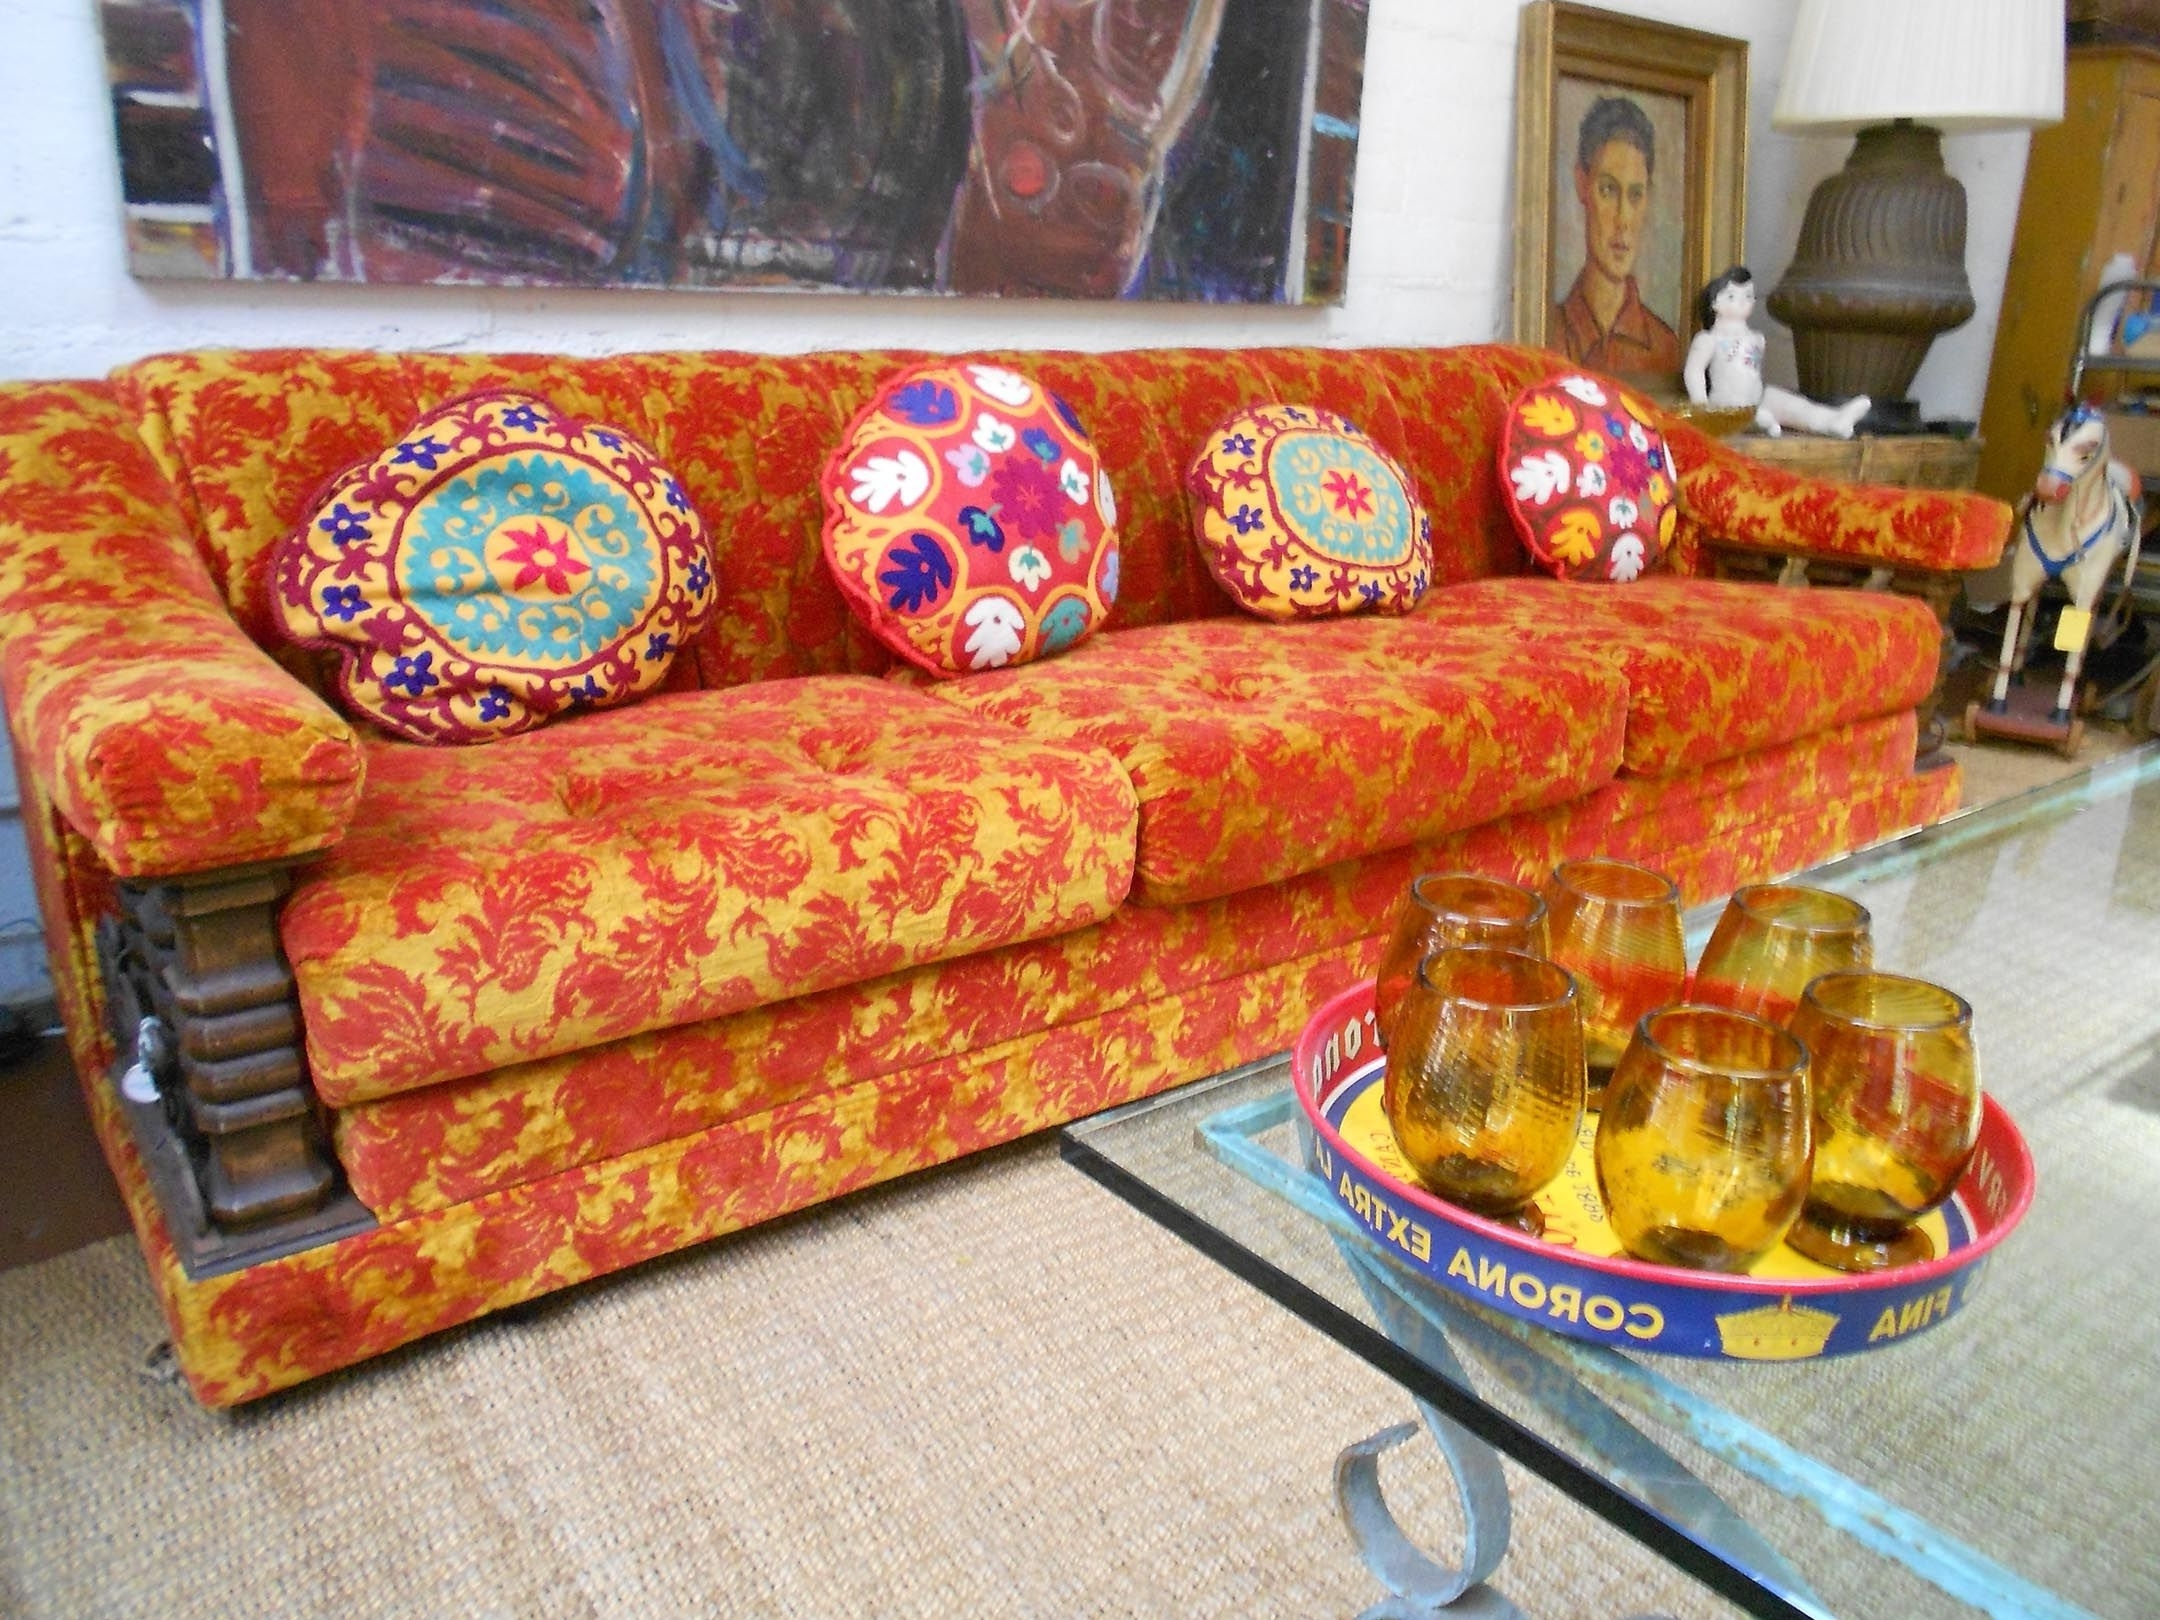 Orange #red #brocade #sofa #1960's #uzbeki #pillows #handblown Intended For Popular Sears Sectional Sofas (View 12 of 15)